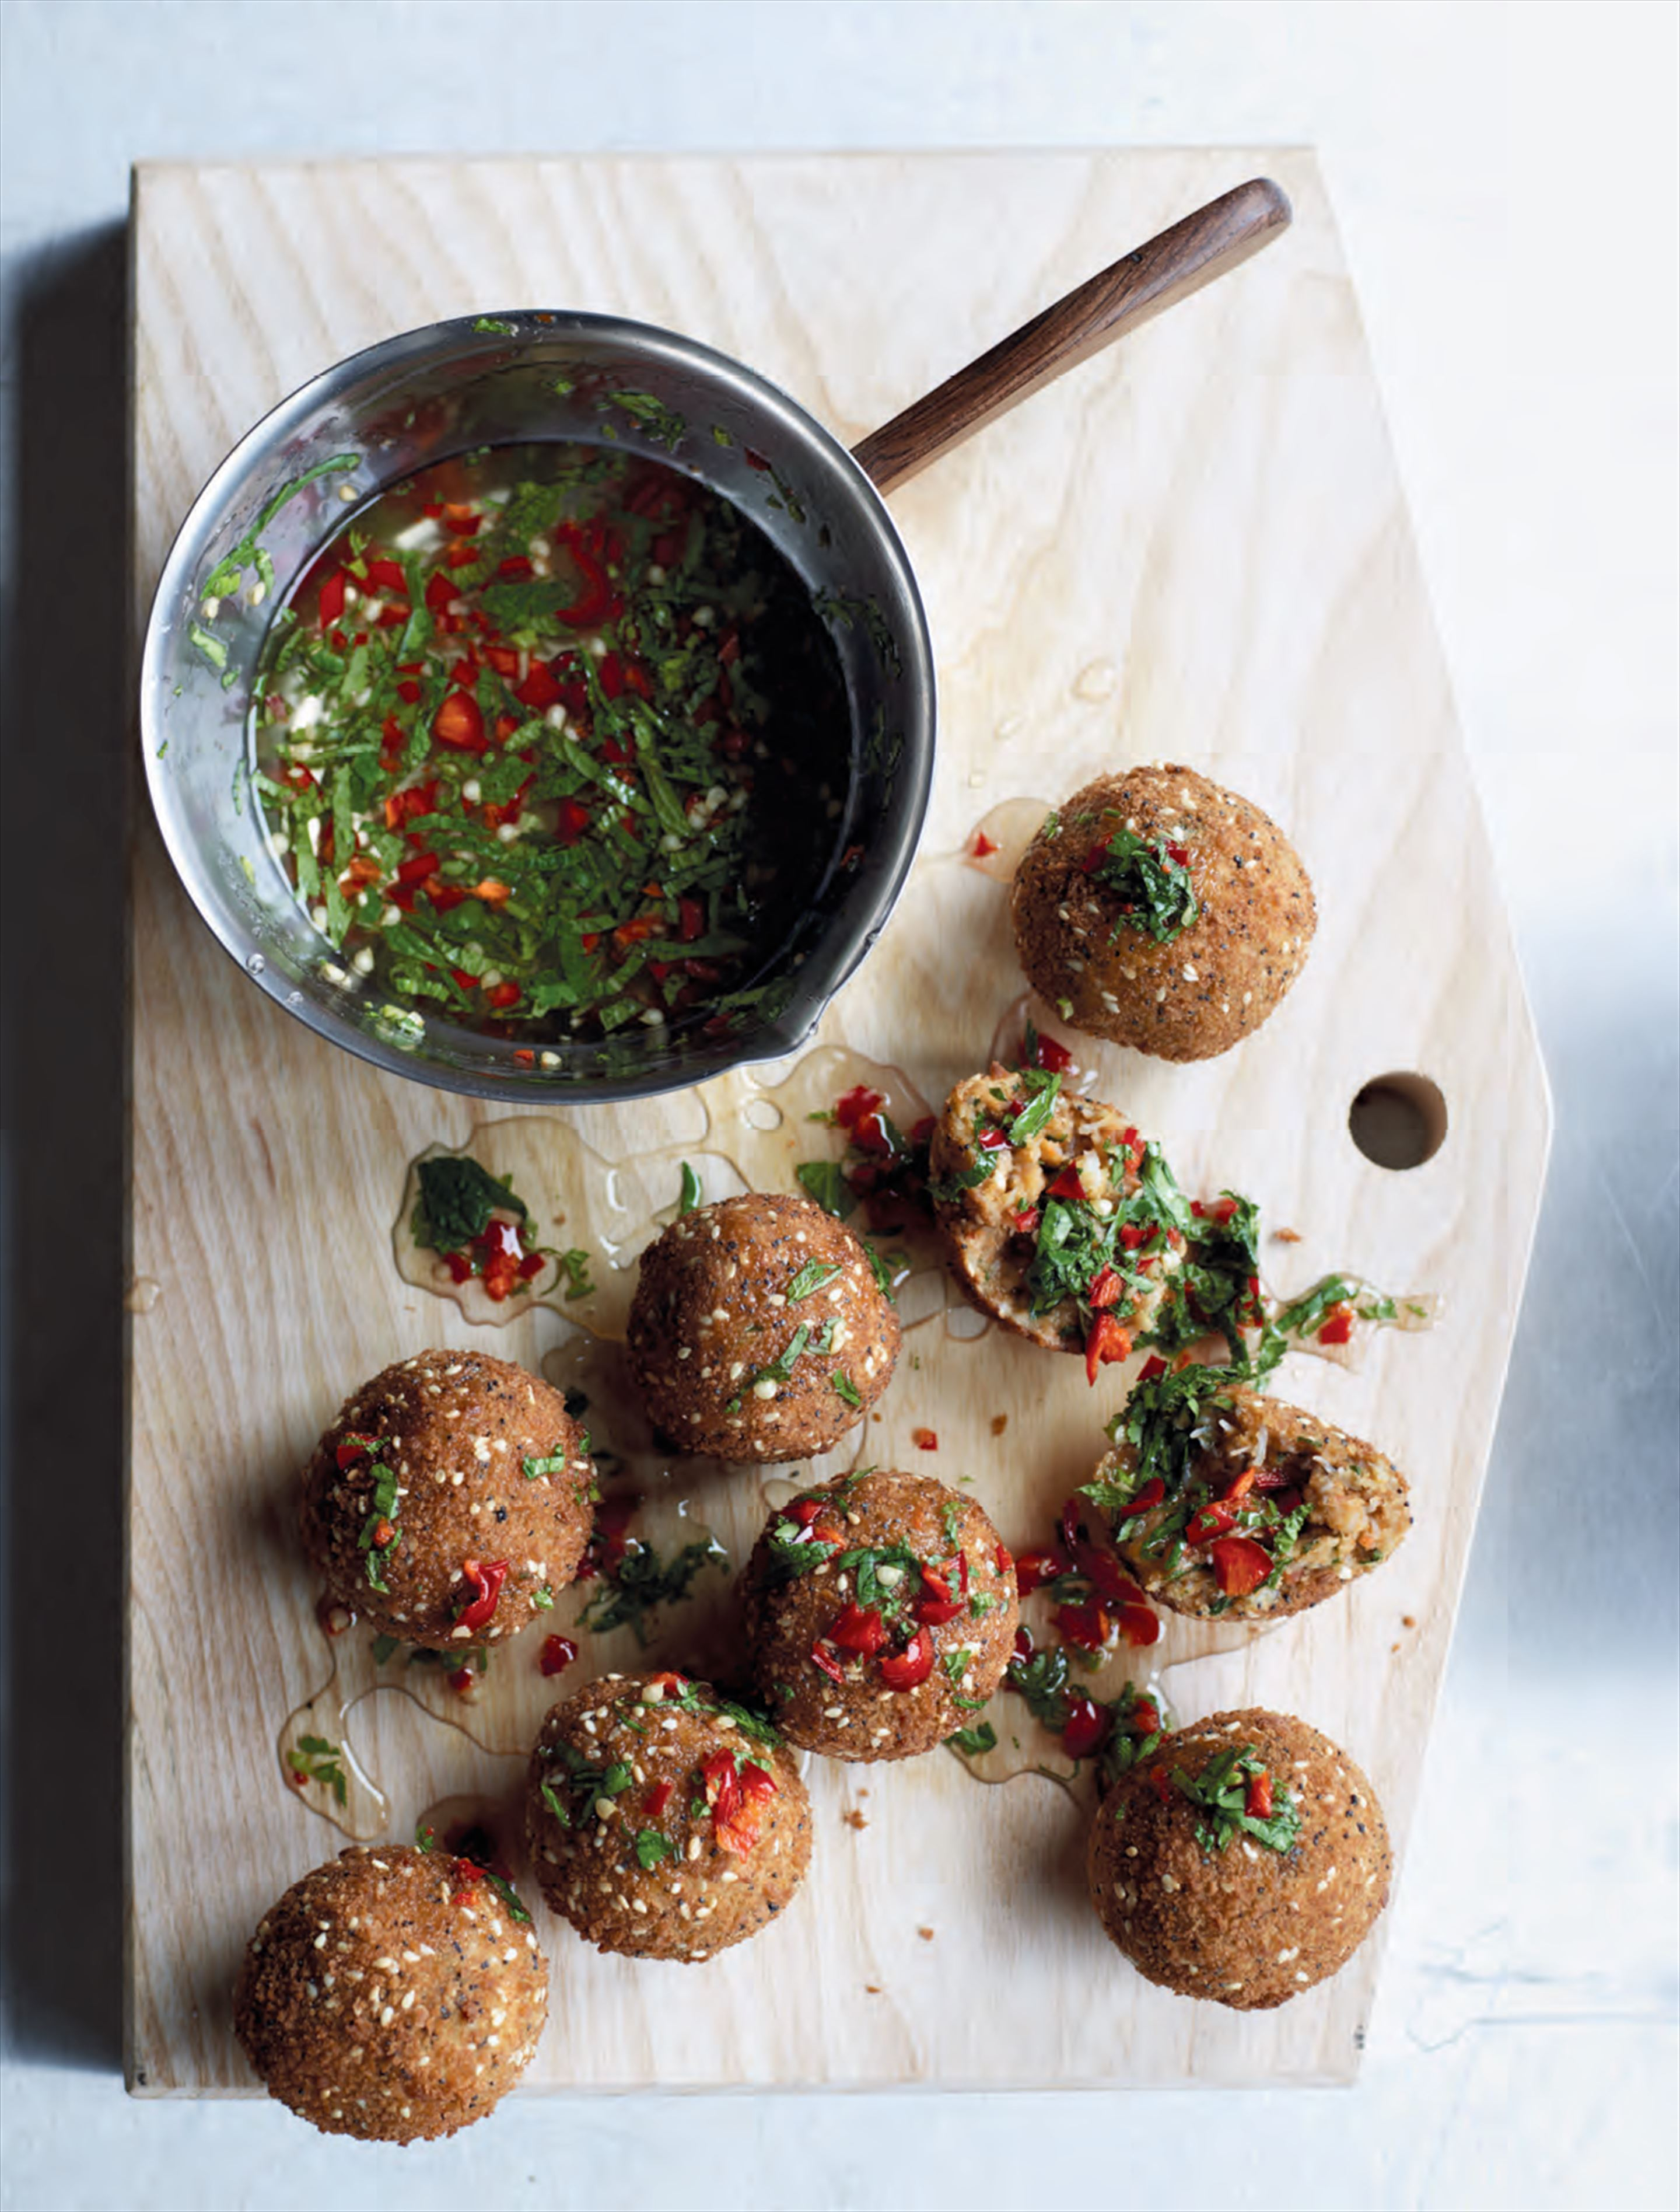 Coriander crab cakes with chilli jam